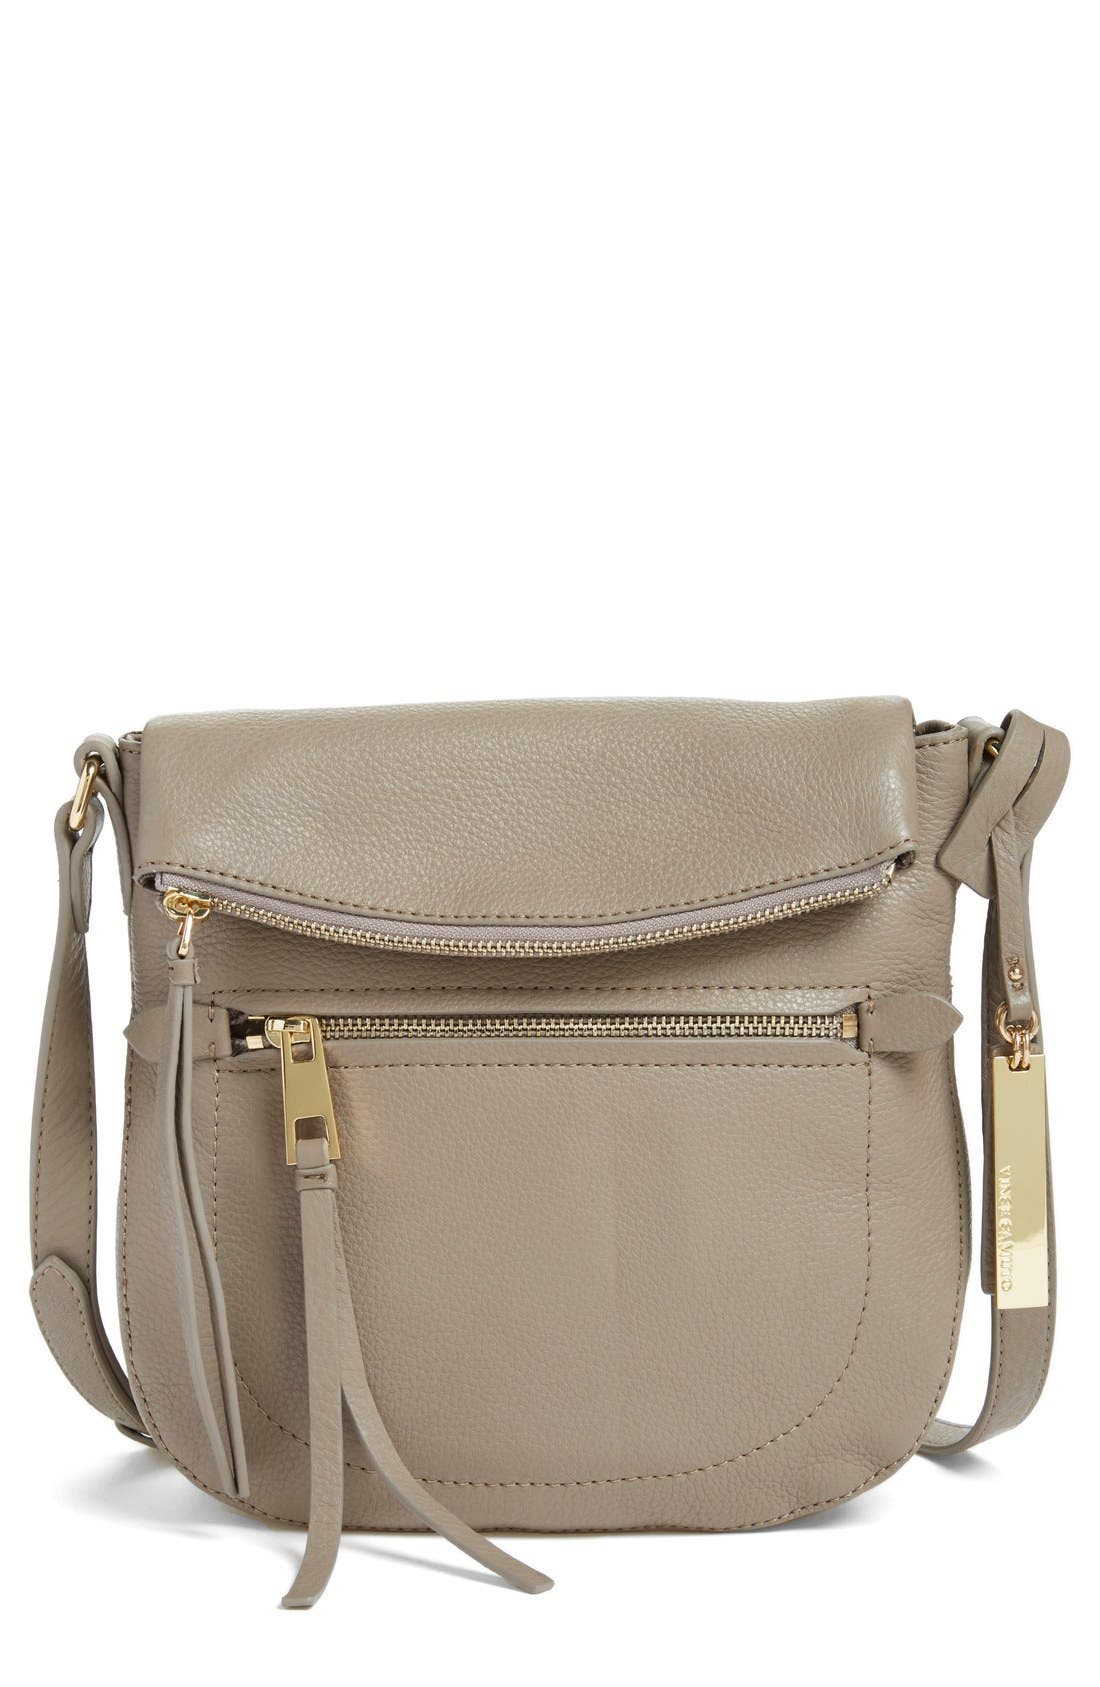 'Tala' Leather Crossbody Bag,                             Main thumbnail 5, color,